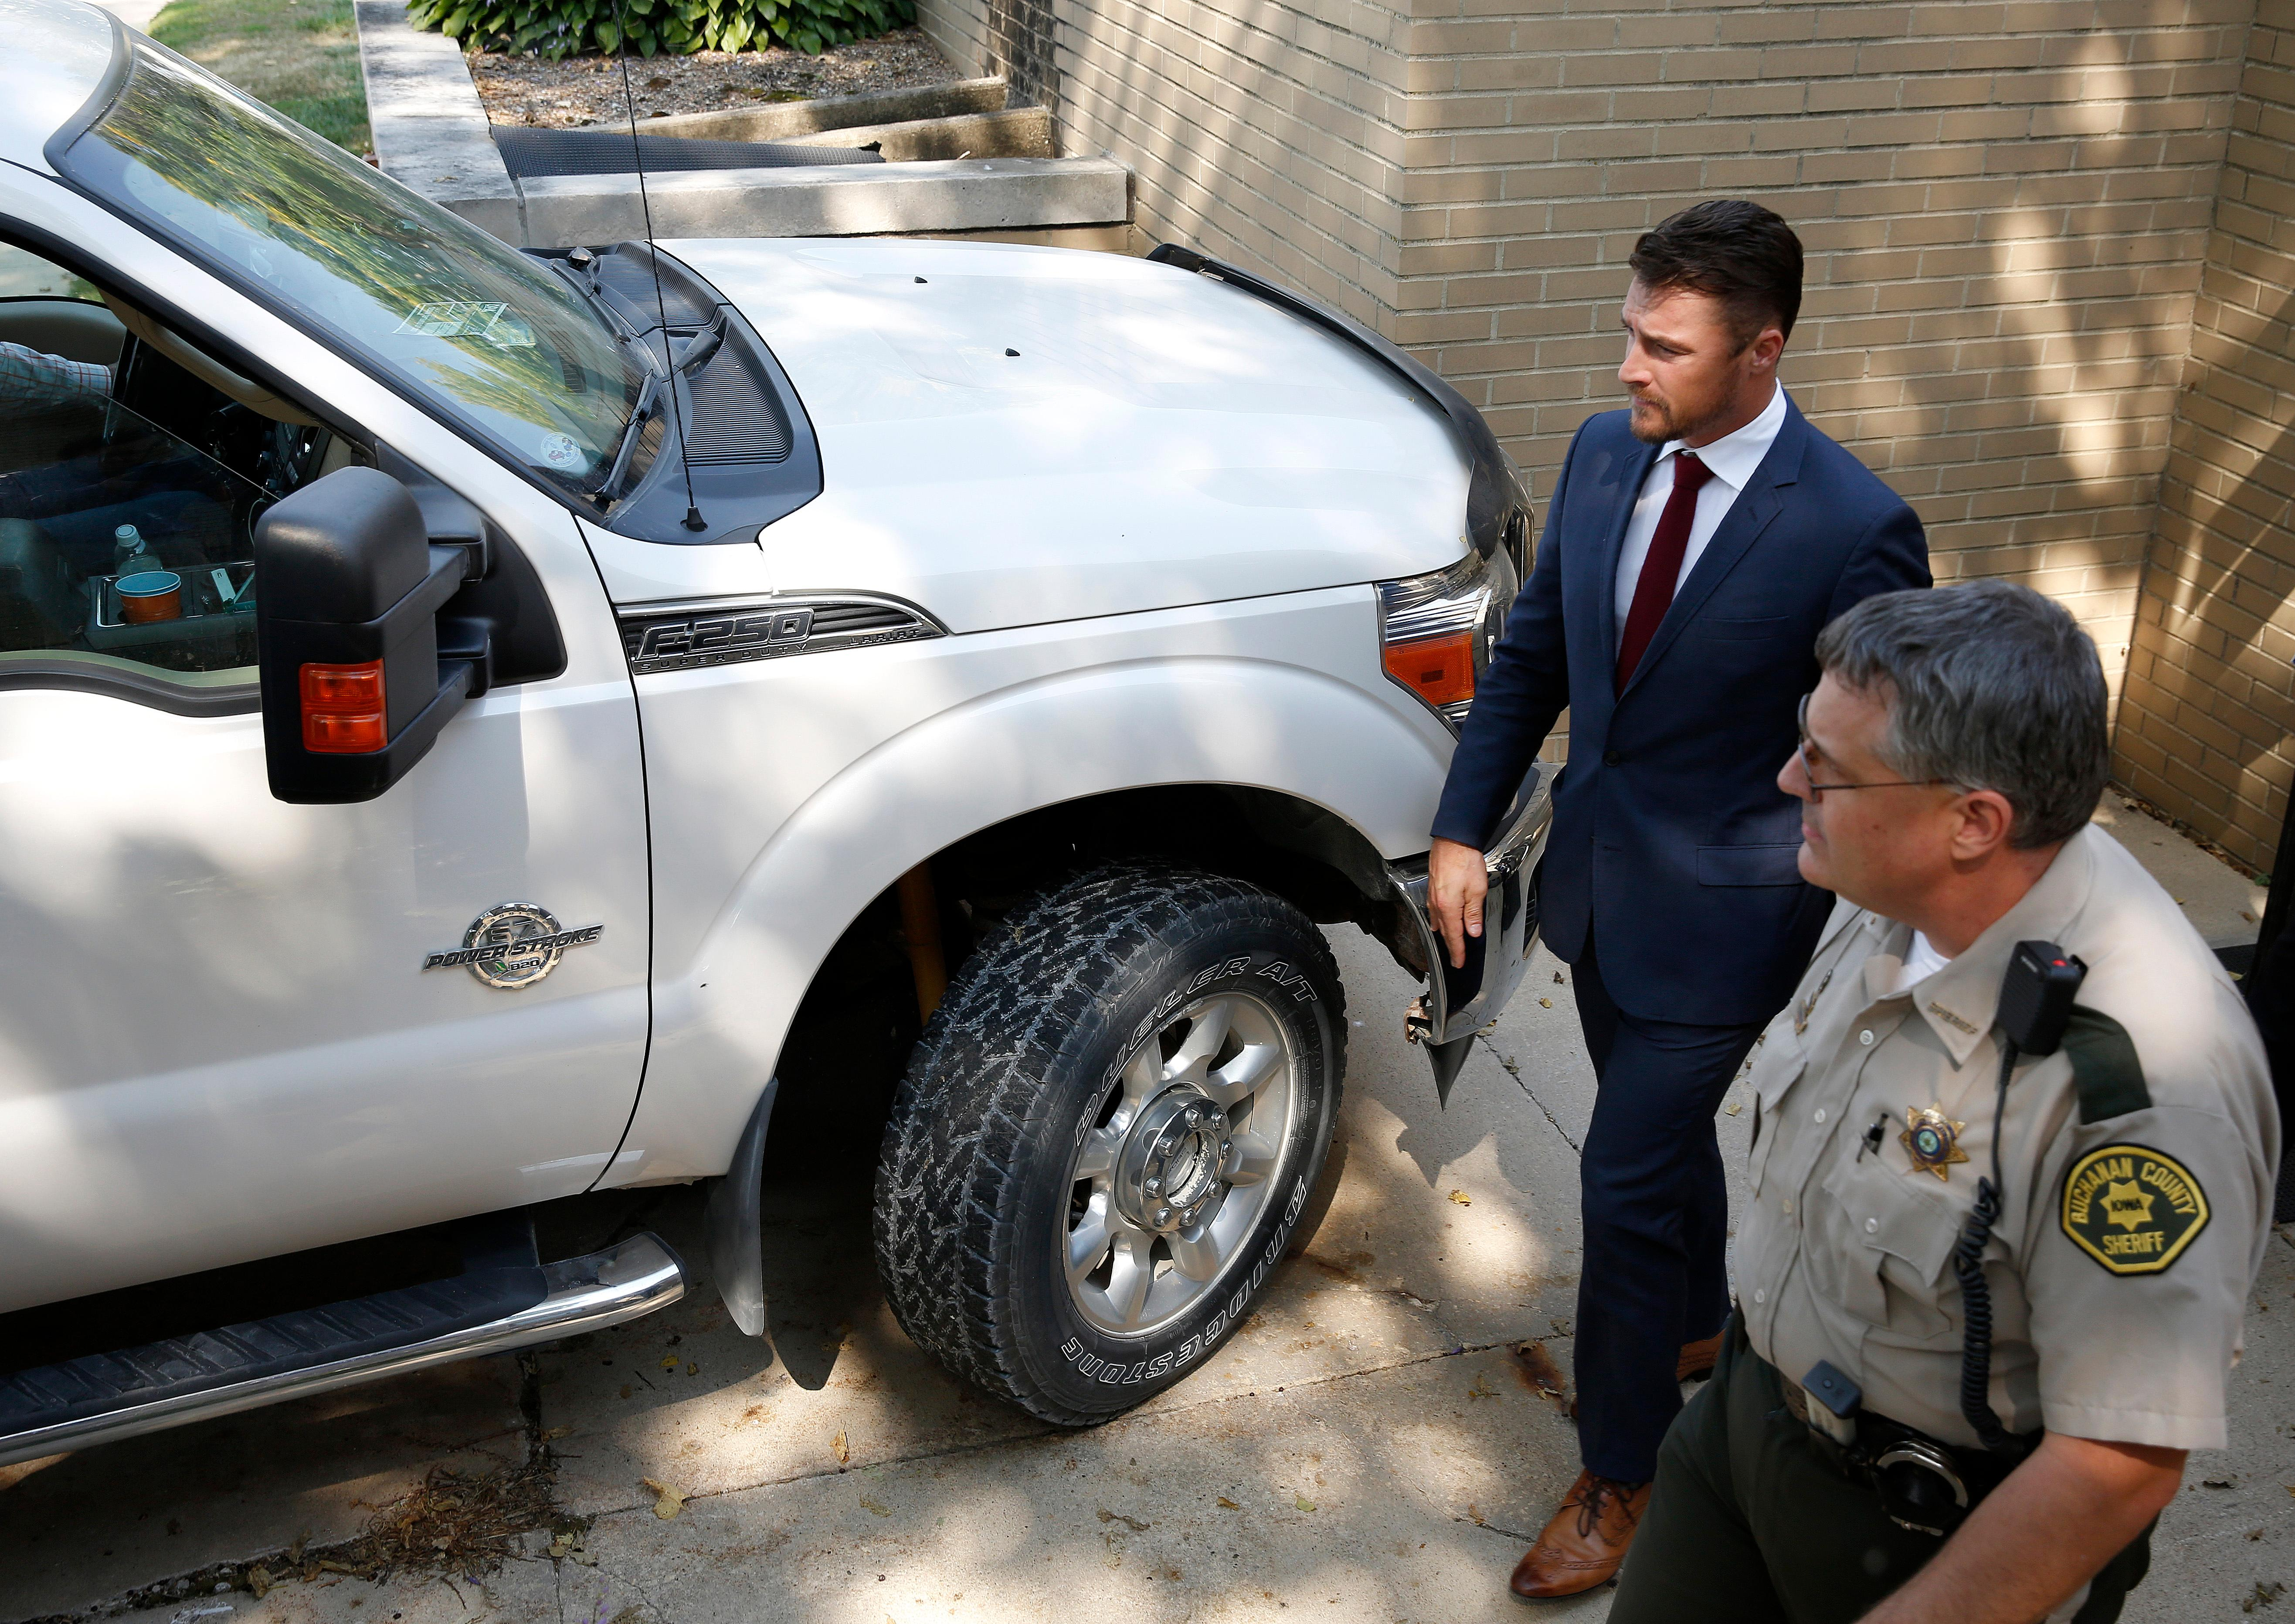 Chris Soules heads to his fathers truck after a hearing in Buchanan County District Court Thursday, Sept. 14, 2017, in Independence, Iowa. Reality TV star Soules is charged with leaving the scene in a fatal April crash near Aurora, Iowa. (MATTHEW PUTNEY, The Courier /POOL)